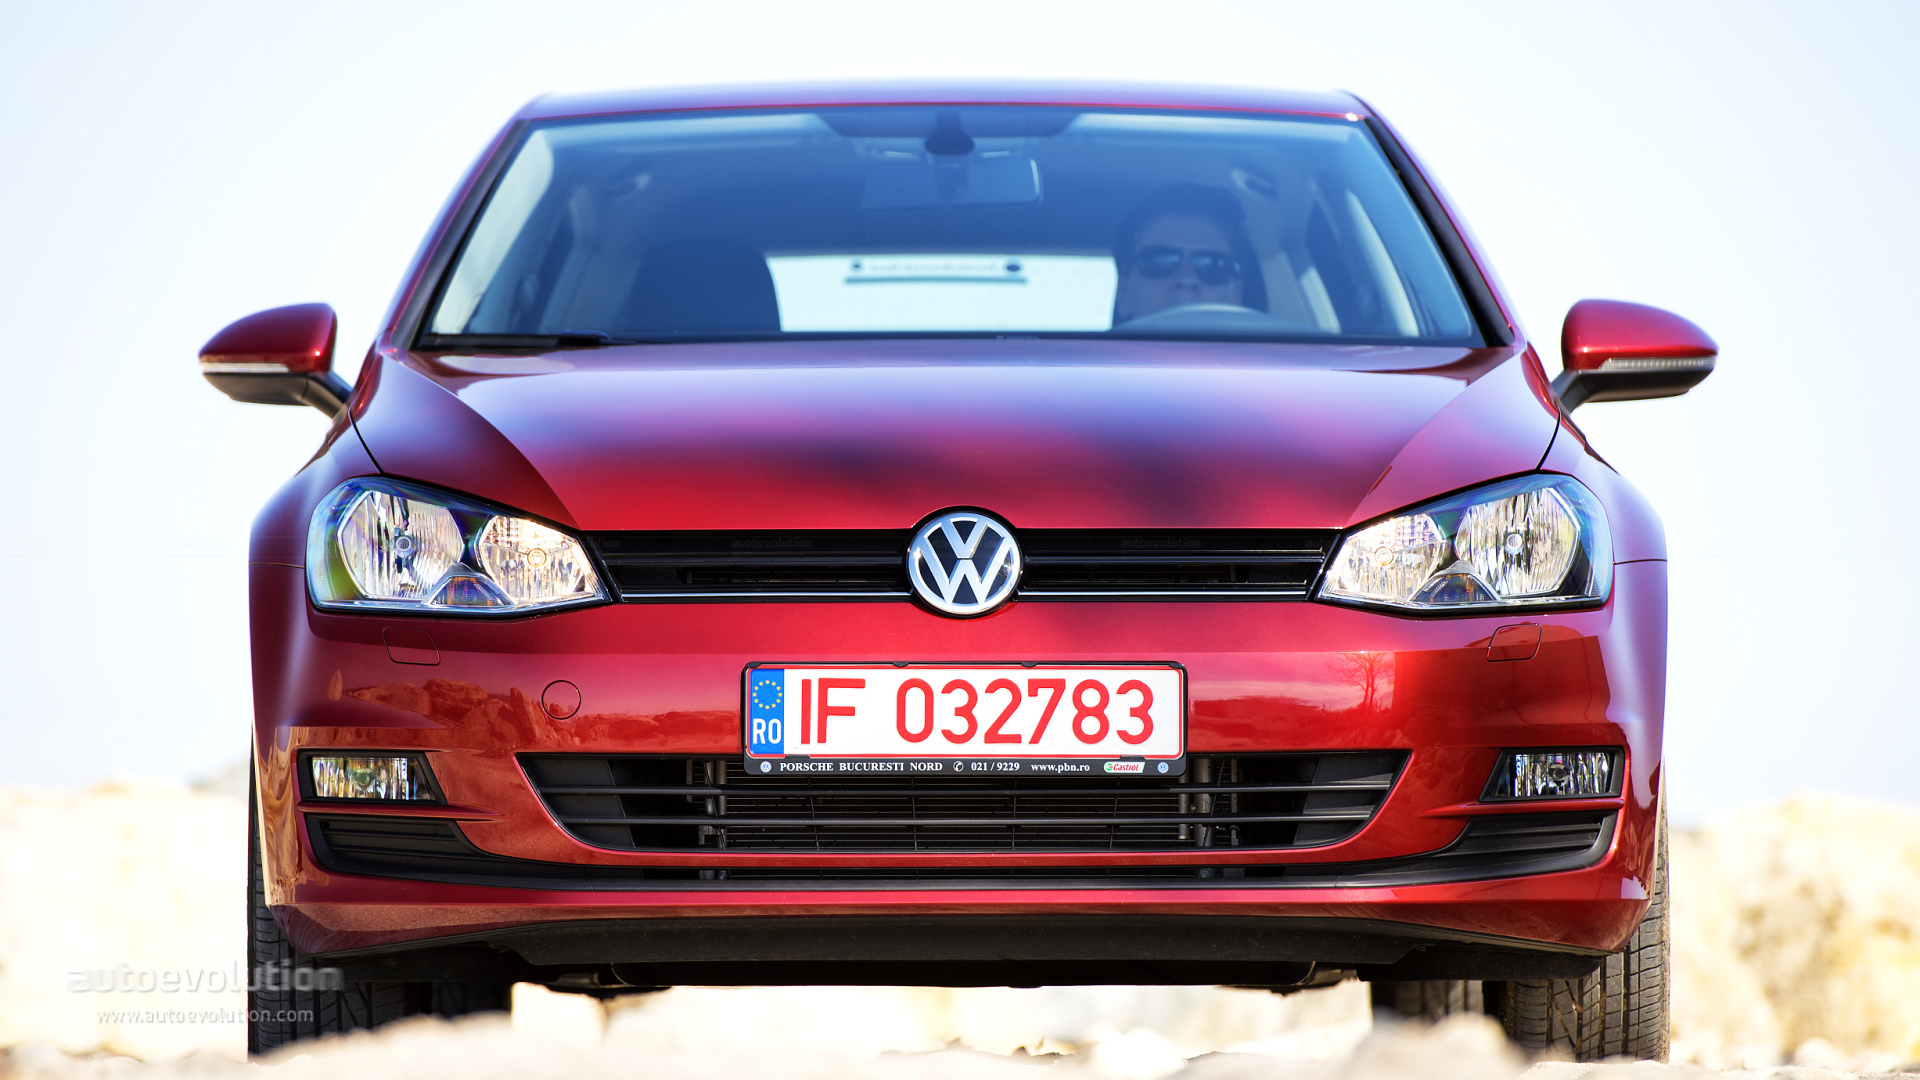 Volkswagen Facing Loss of Acceleration Accusations in Australia